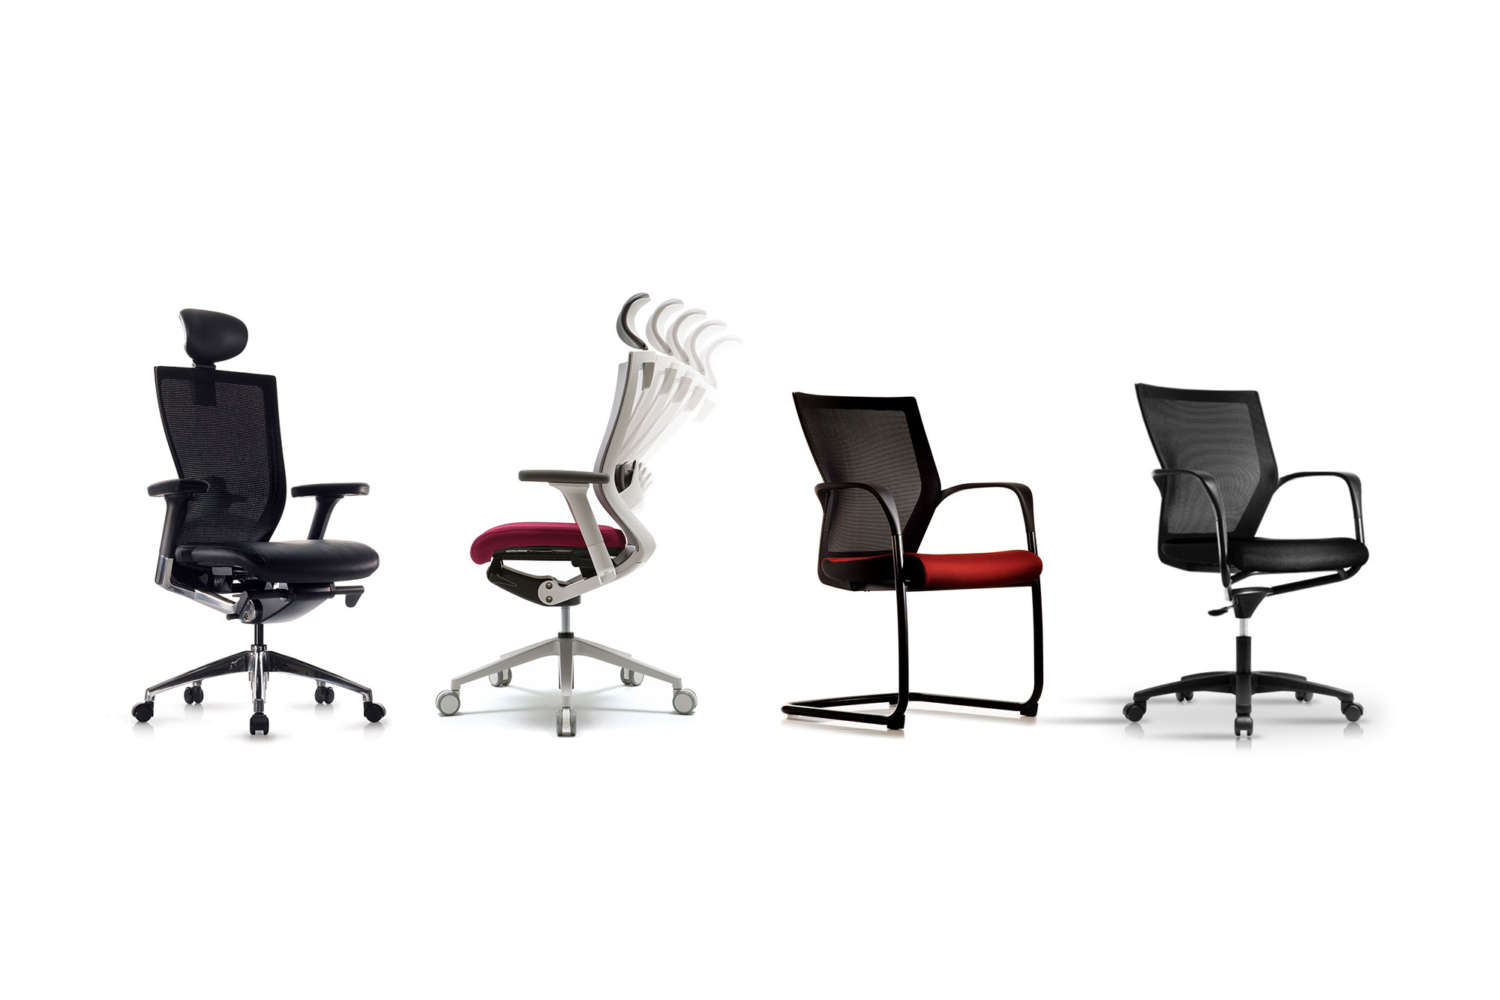 T50 series workspace chairs in different styles